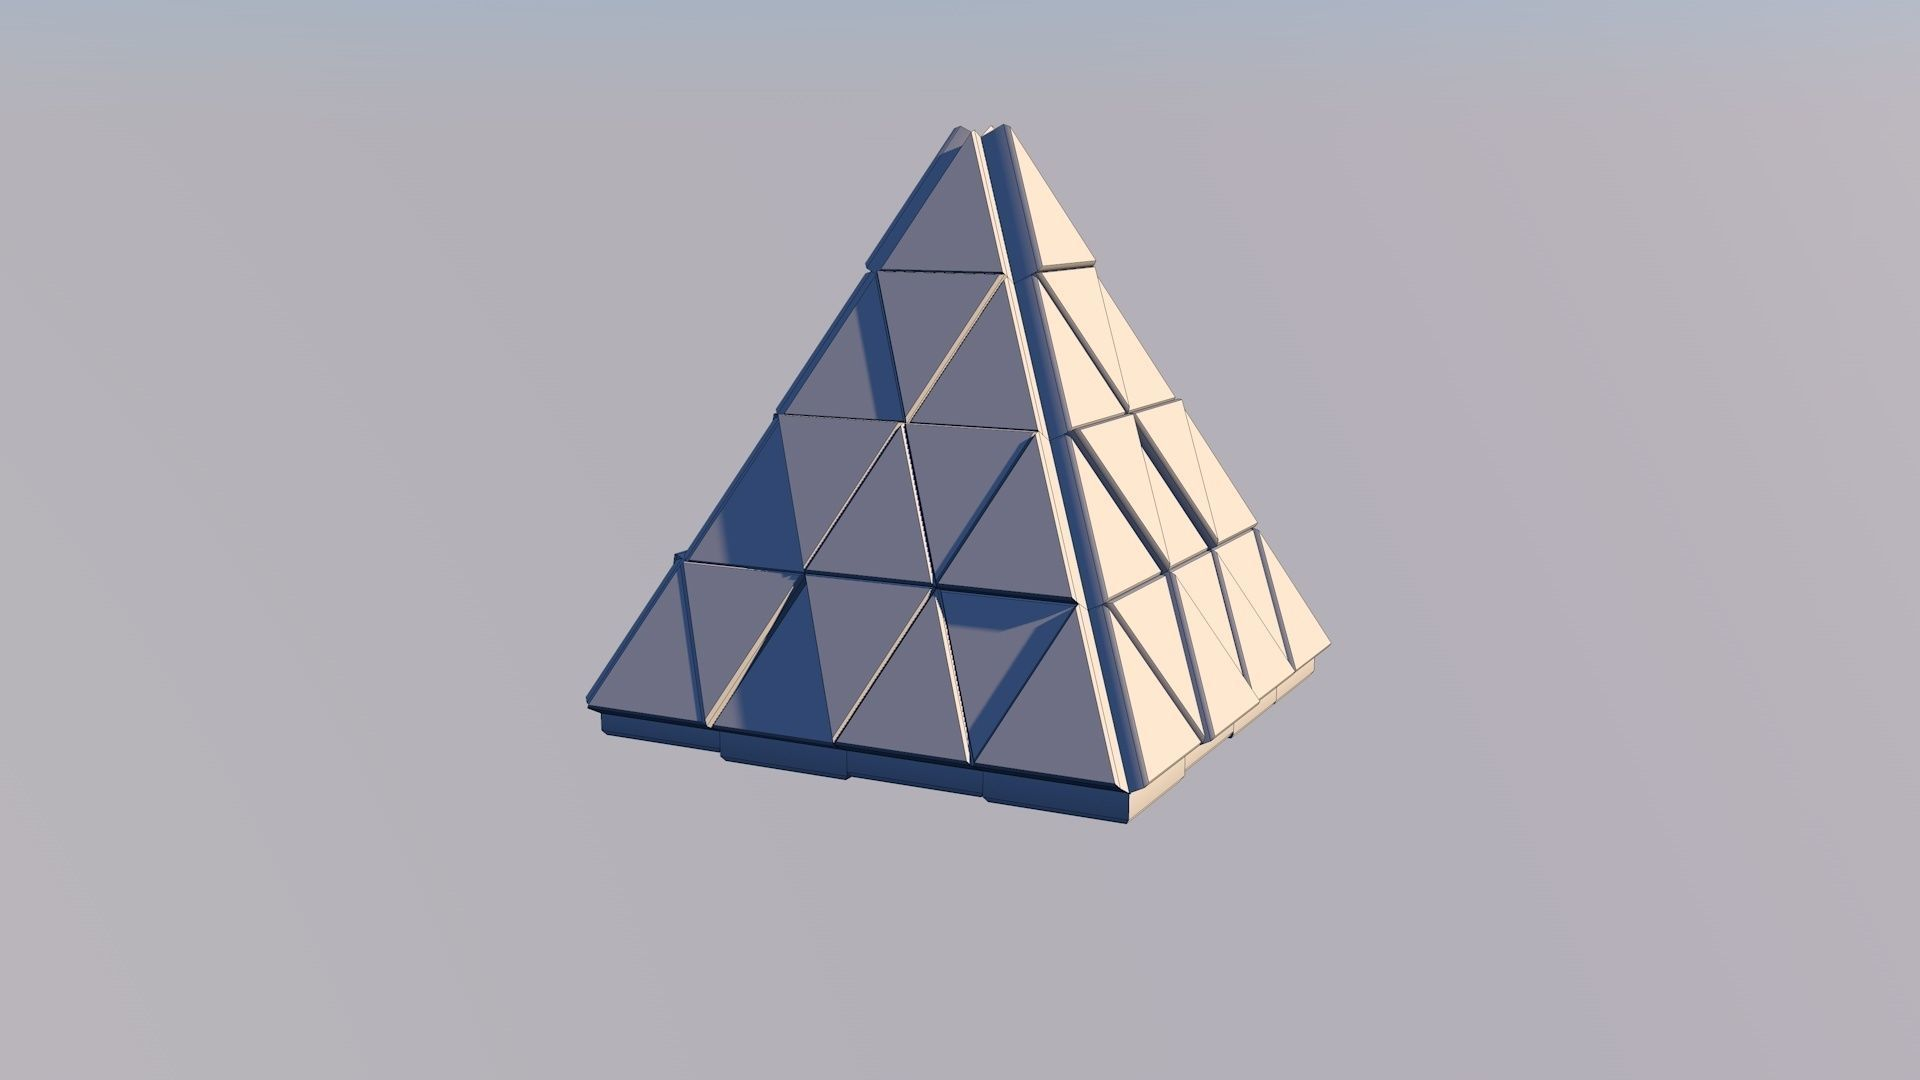 Sci Fi Pyramid Shape Triangle Low Poly 3d Model